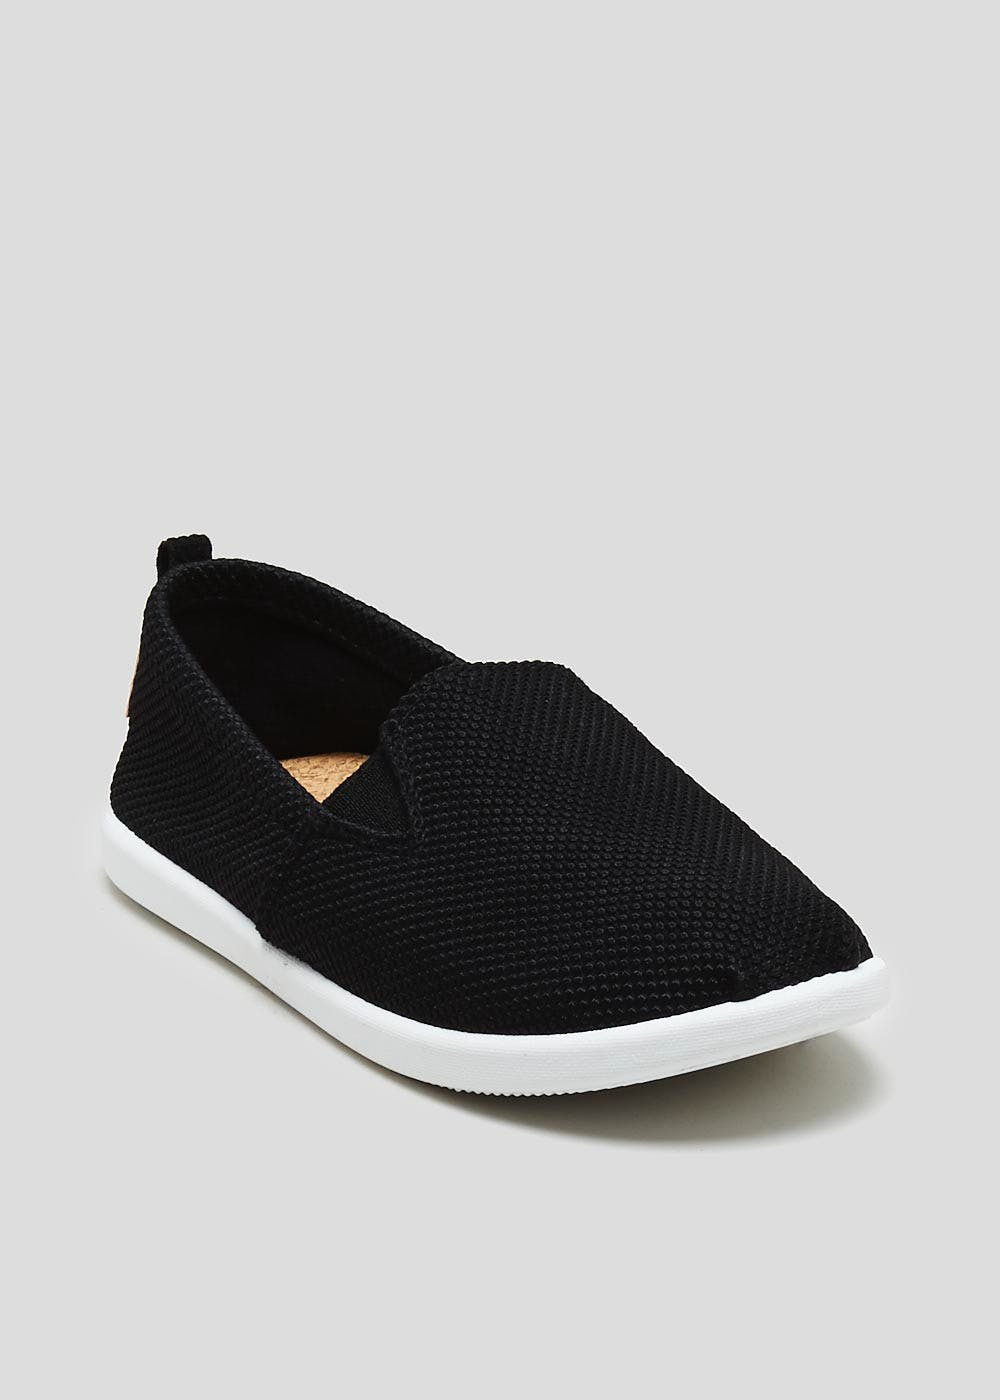 83f472d37b5 Kids Slip On Canvas Pumps (Younger 10-Older 6) – Black – Matalan